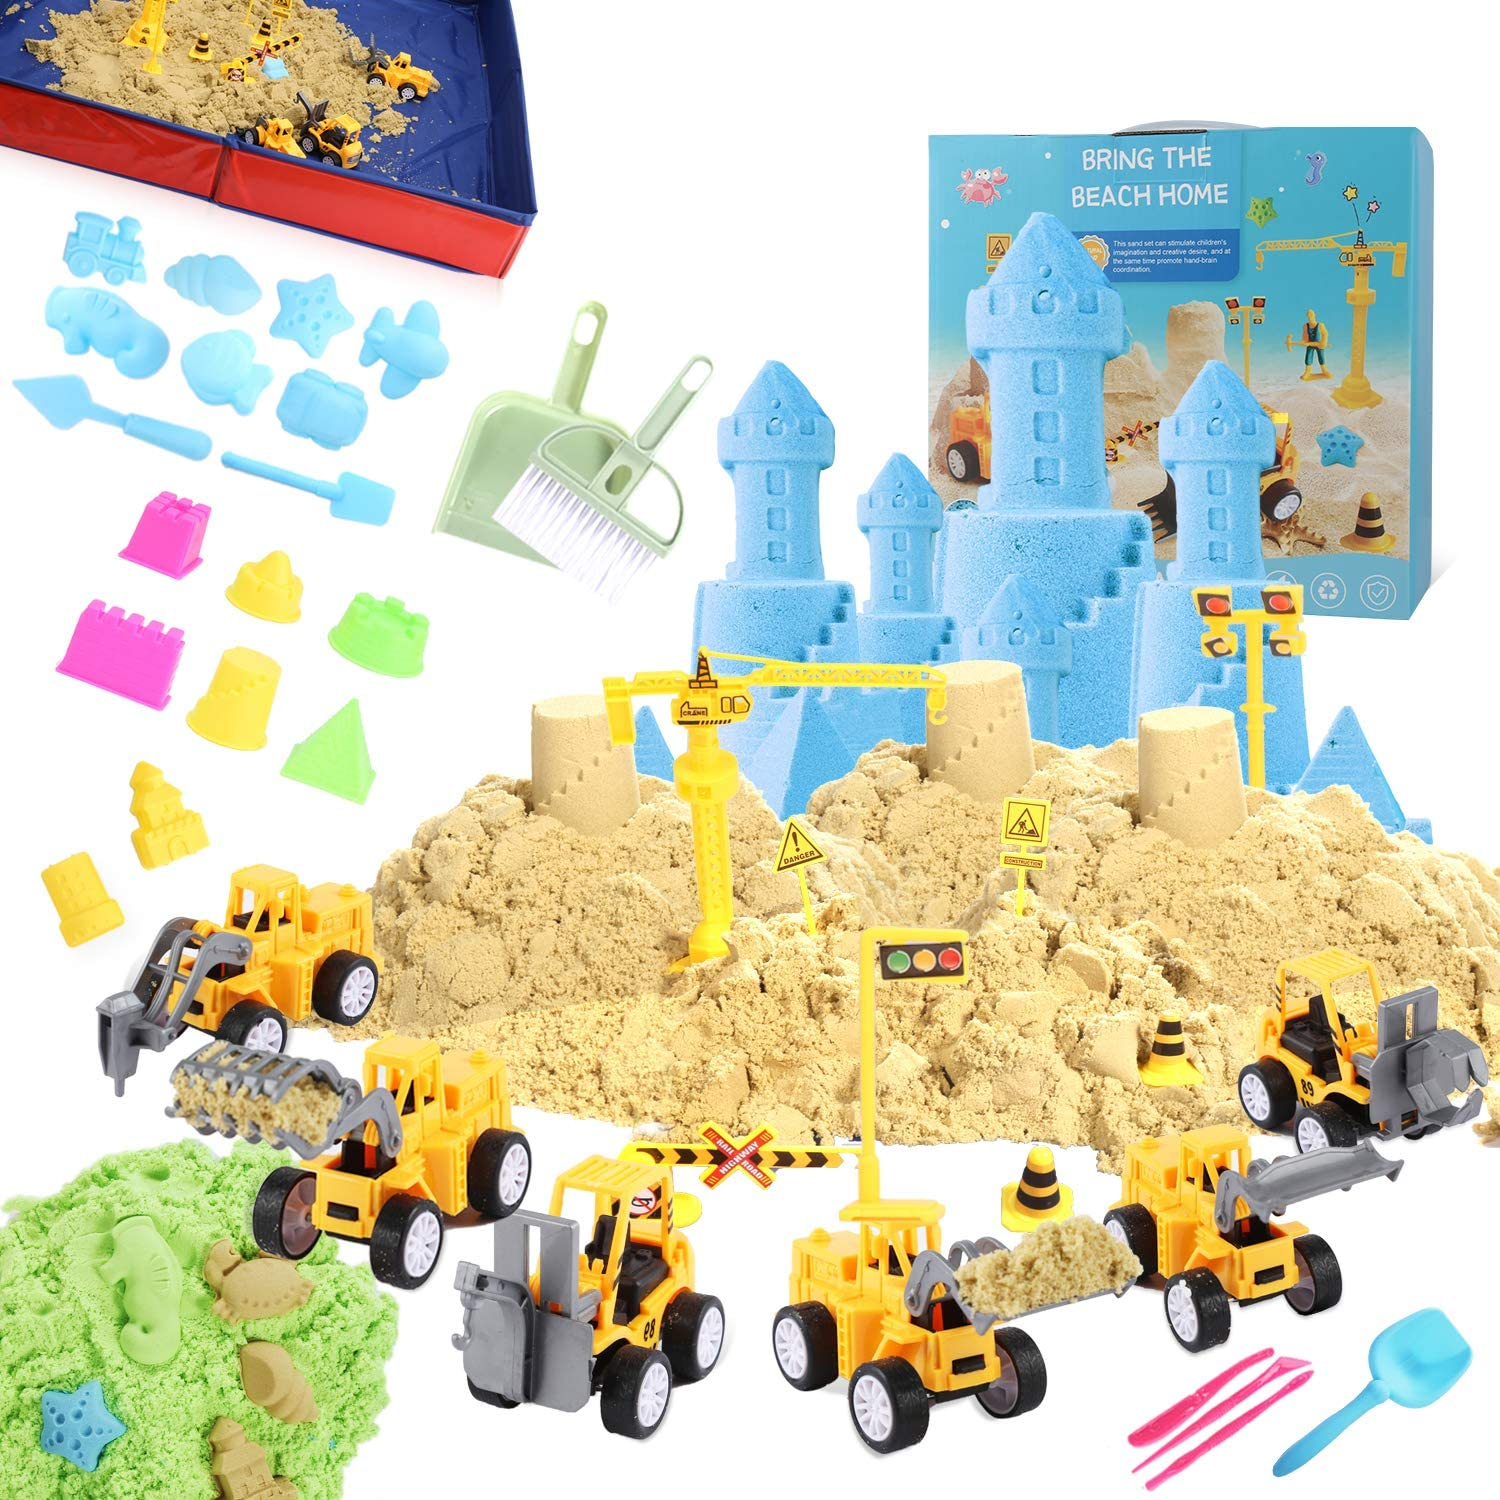 Haplasoo Play Sand for Kids Toys Set 4 Mail order Truck Max 88% OFF Construction 3 lbs